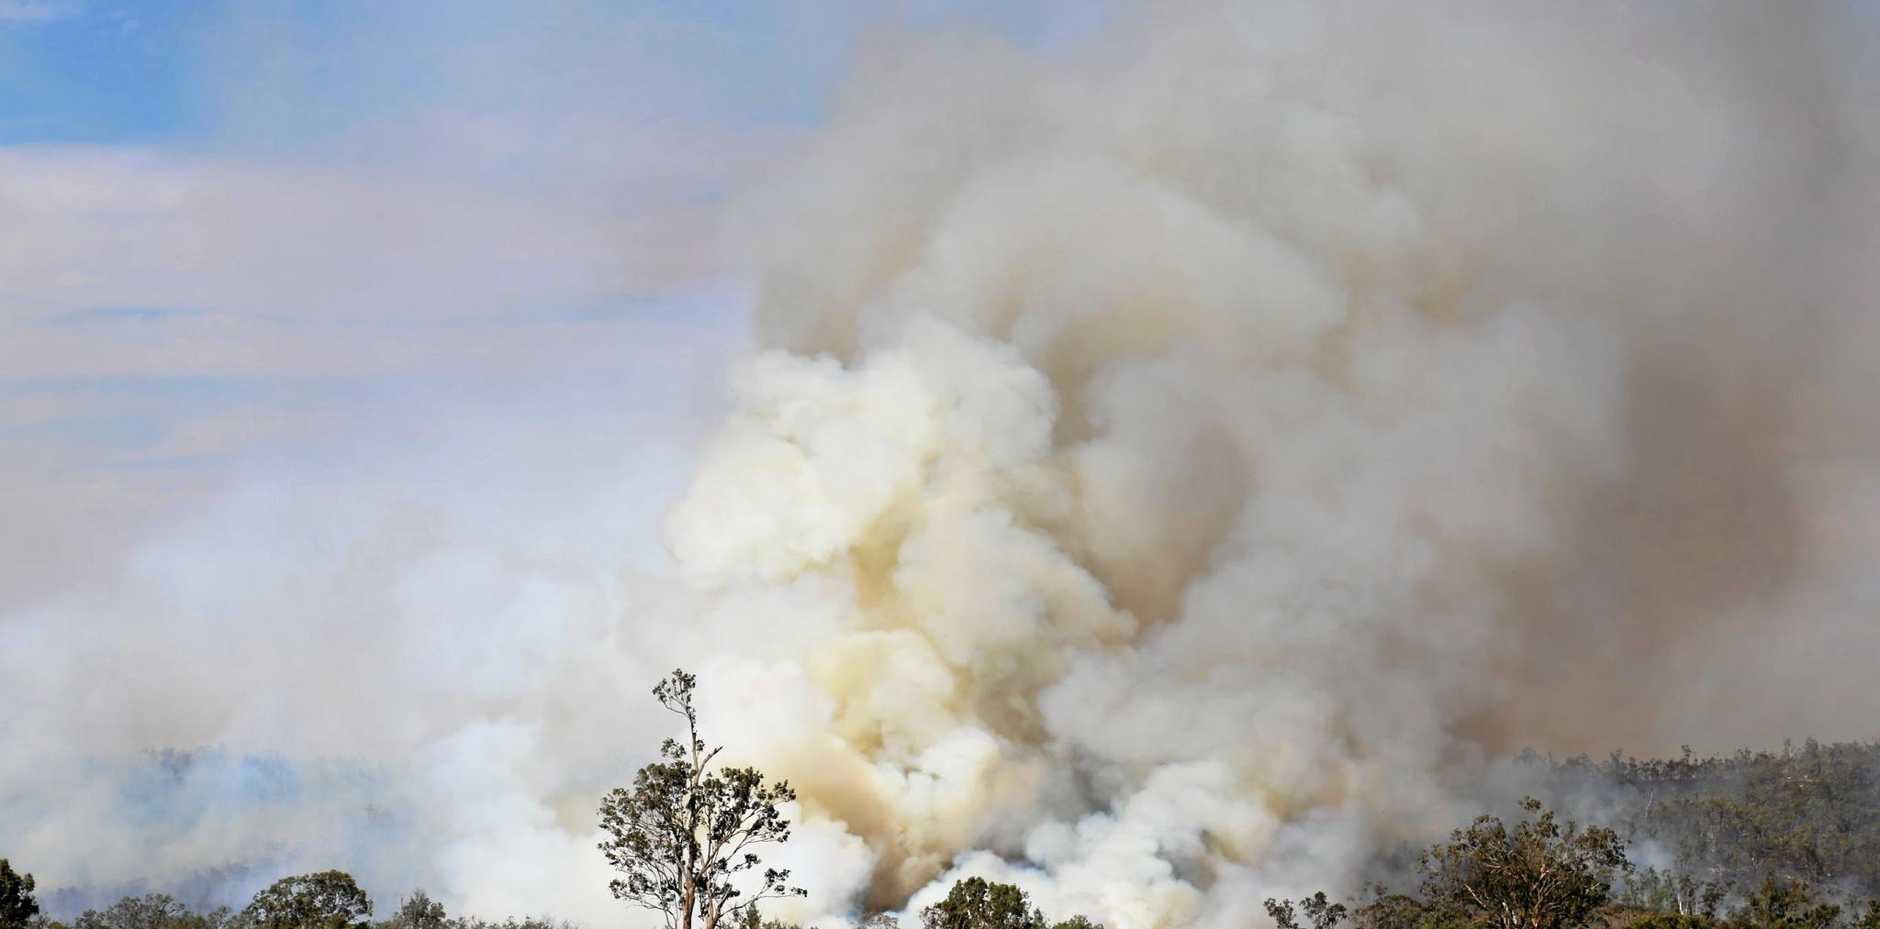 A bushfire burning at Cattles Creek, just west of Mundubbera.